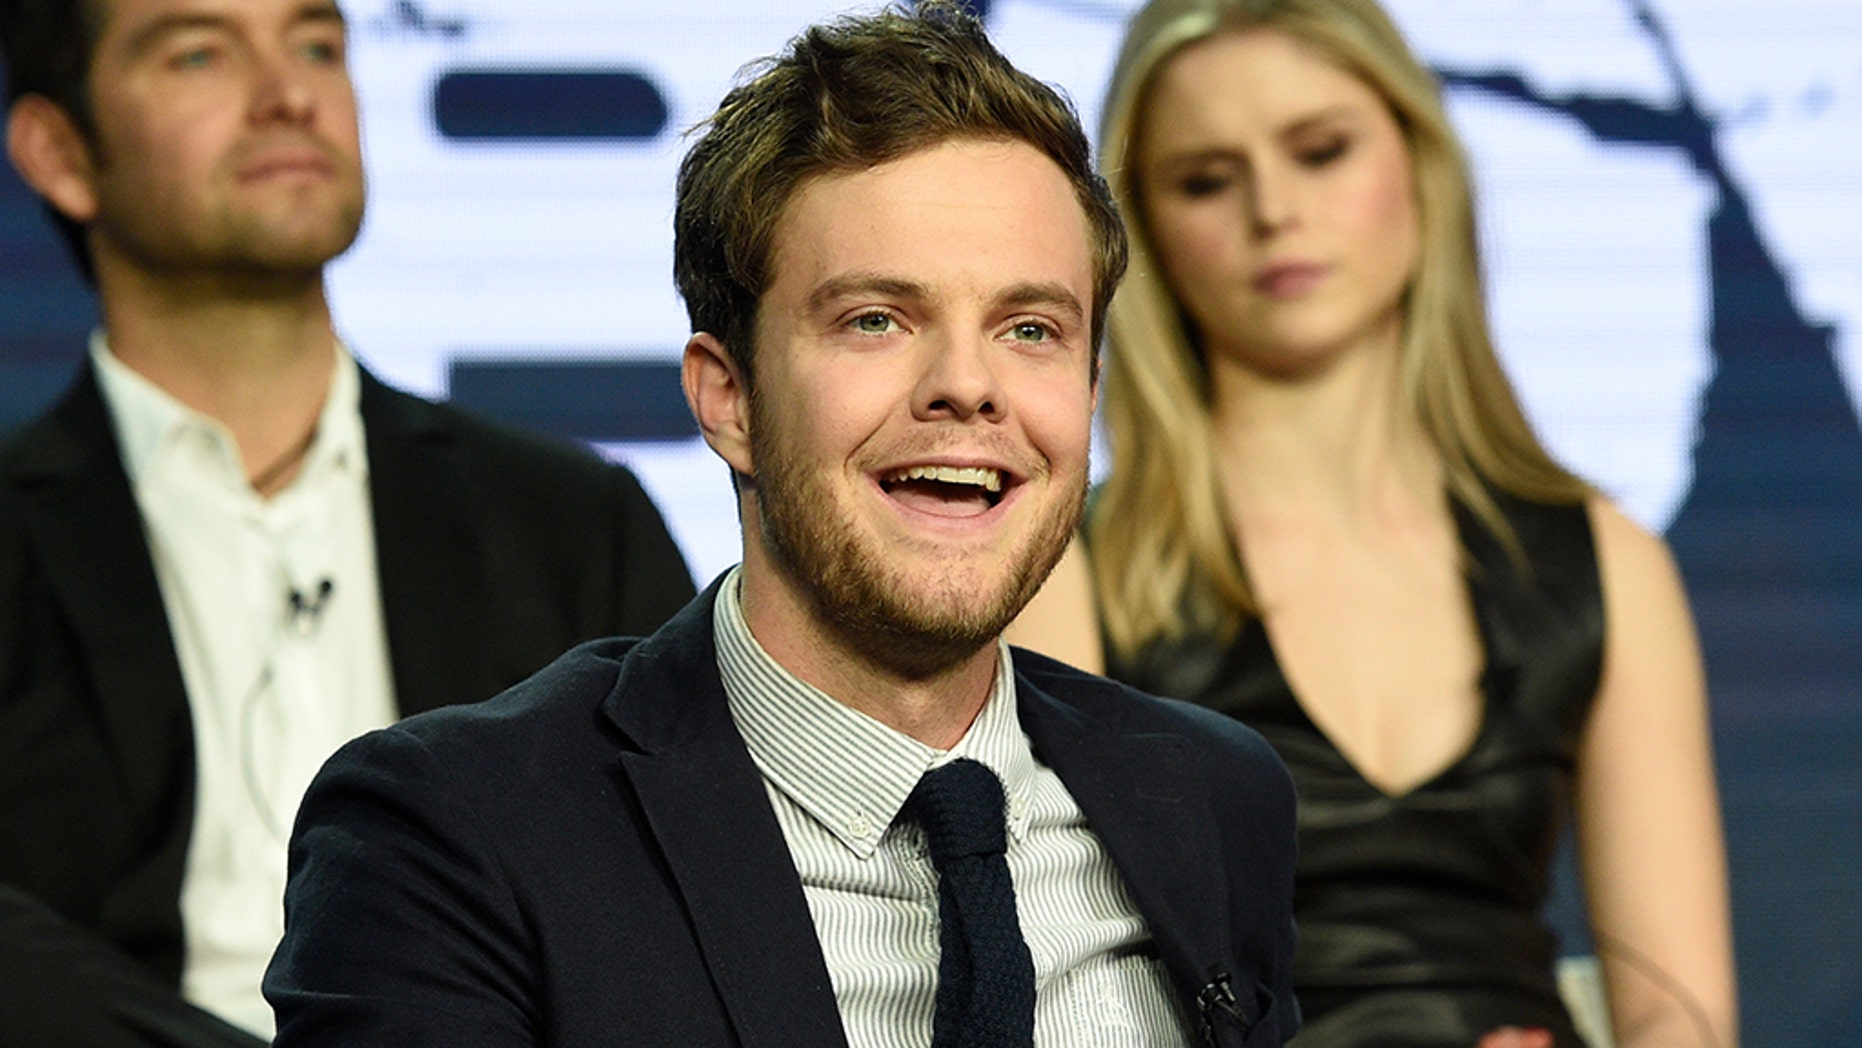 "Jack Quaid spoke about growing up with his famous parents, Dennis Quaid and Meg Ryan, during the Amazon Prime Video ""The Boys"" panel at the Winter Television Critics Association Press Tour on Wednesday, Feb. 13, 2019, in Pasadena, Calif."